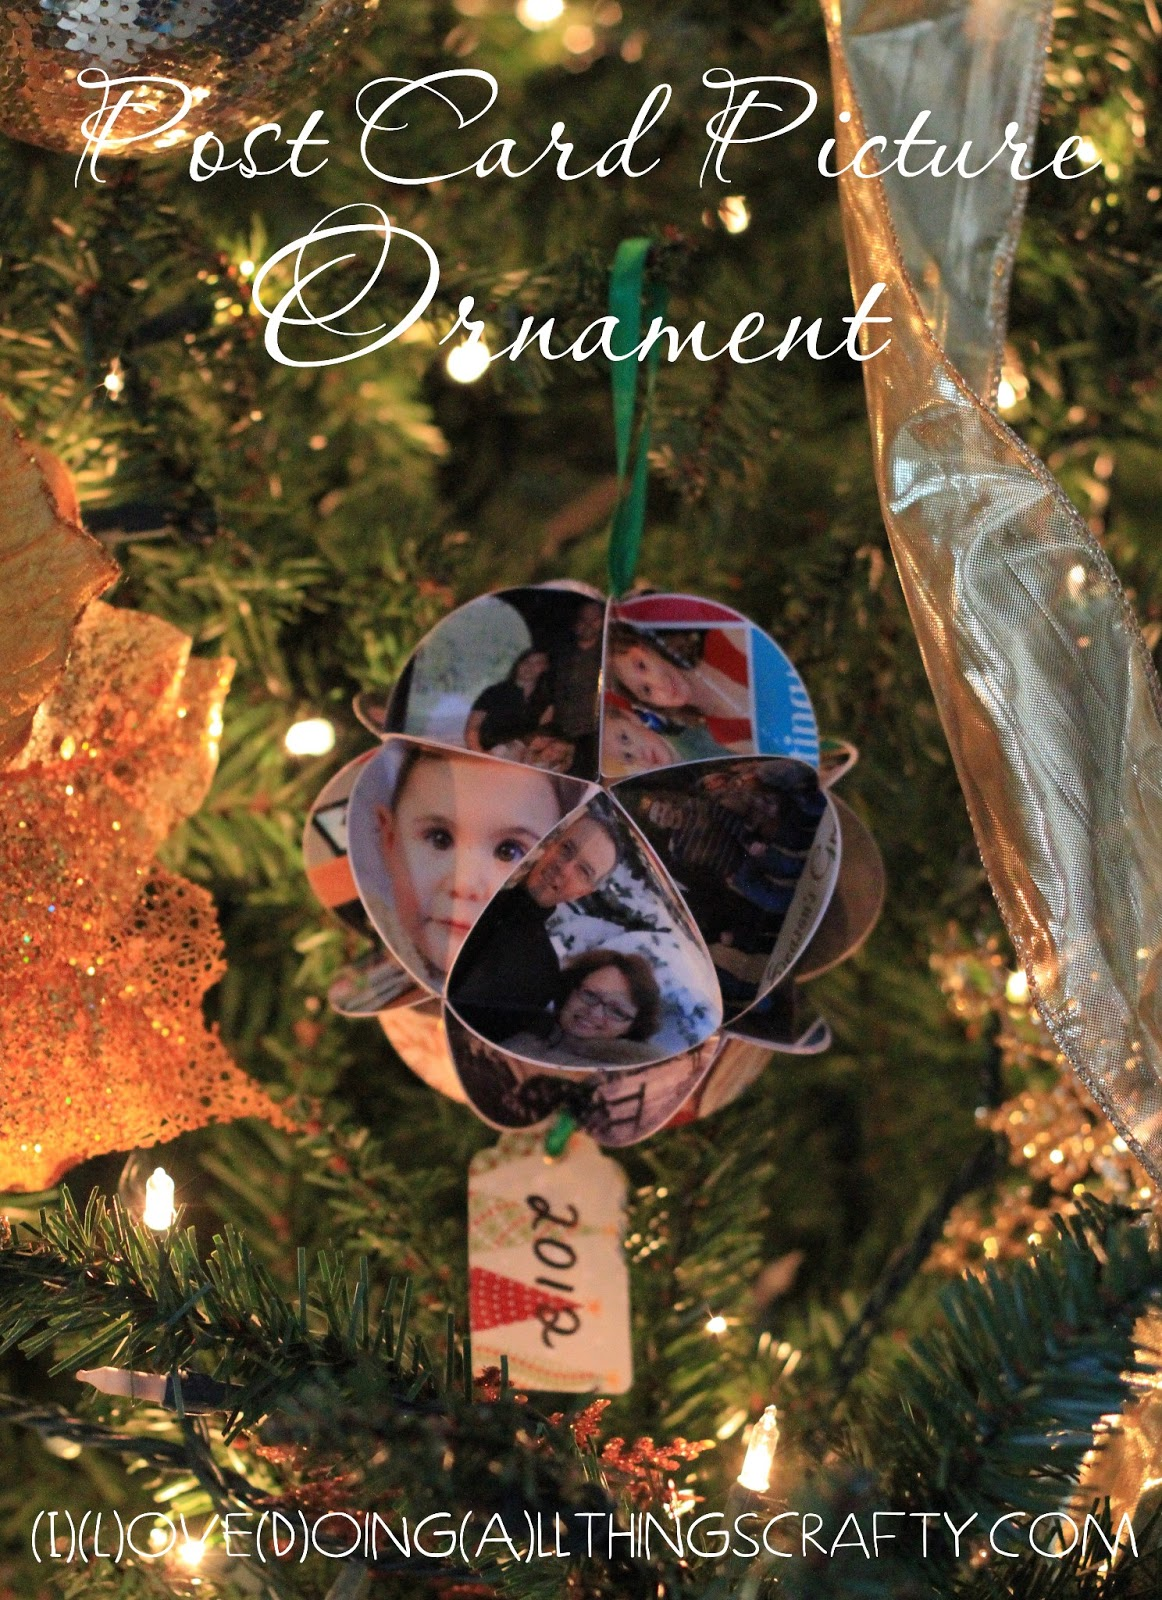 I Love Doing All Things Crafty: DIY Yearly Christmas Post Card Ornament